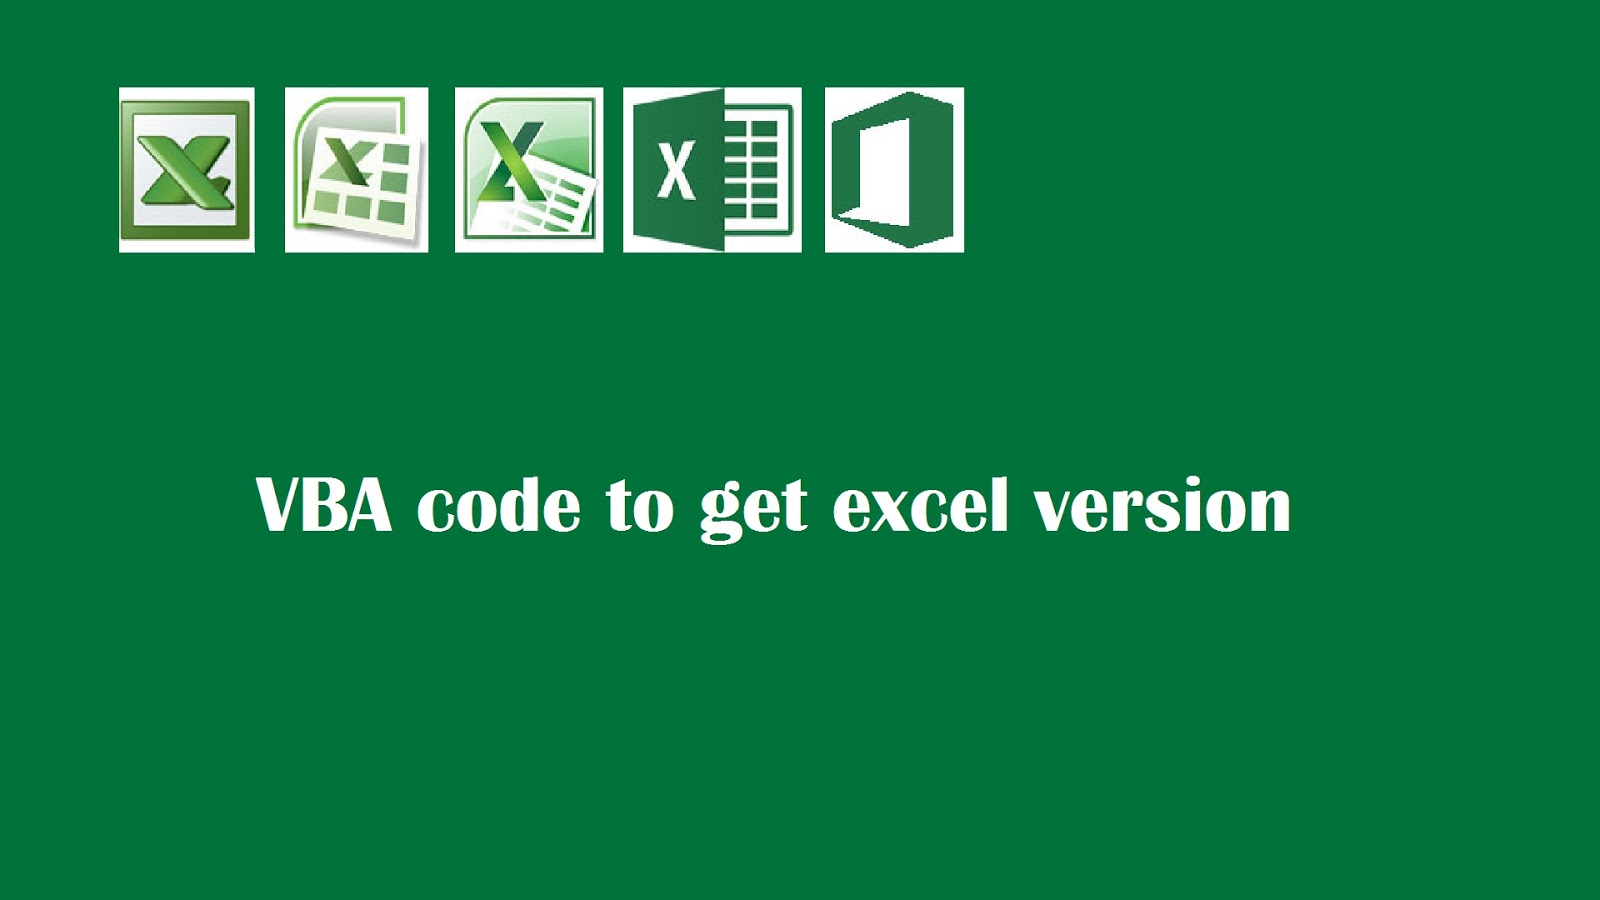 Vba Code To Return Version Of Excel Application